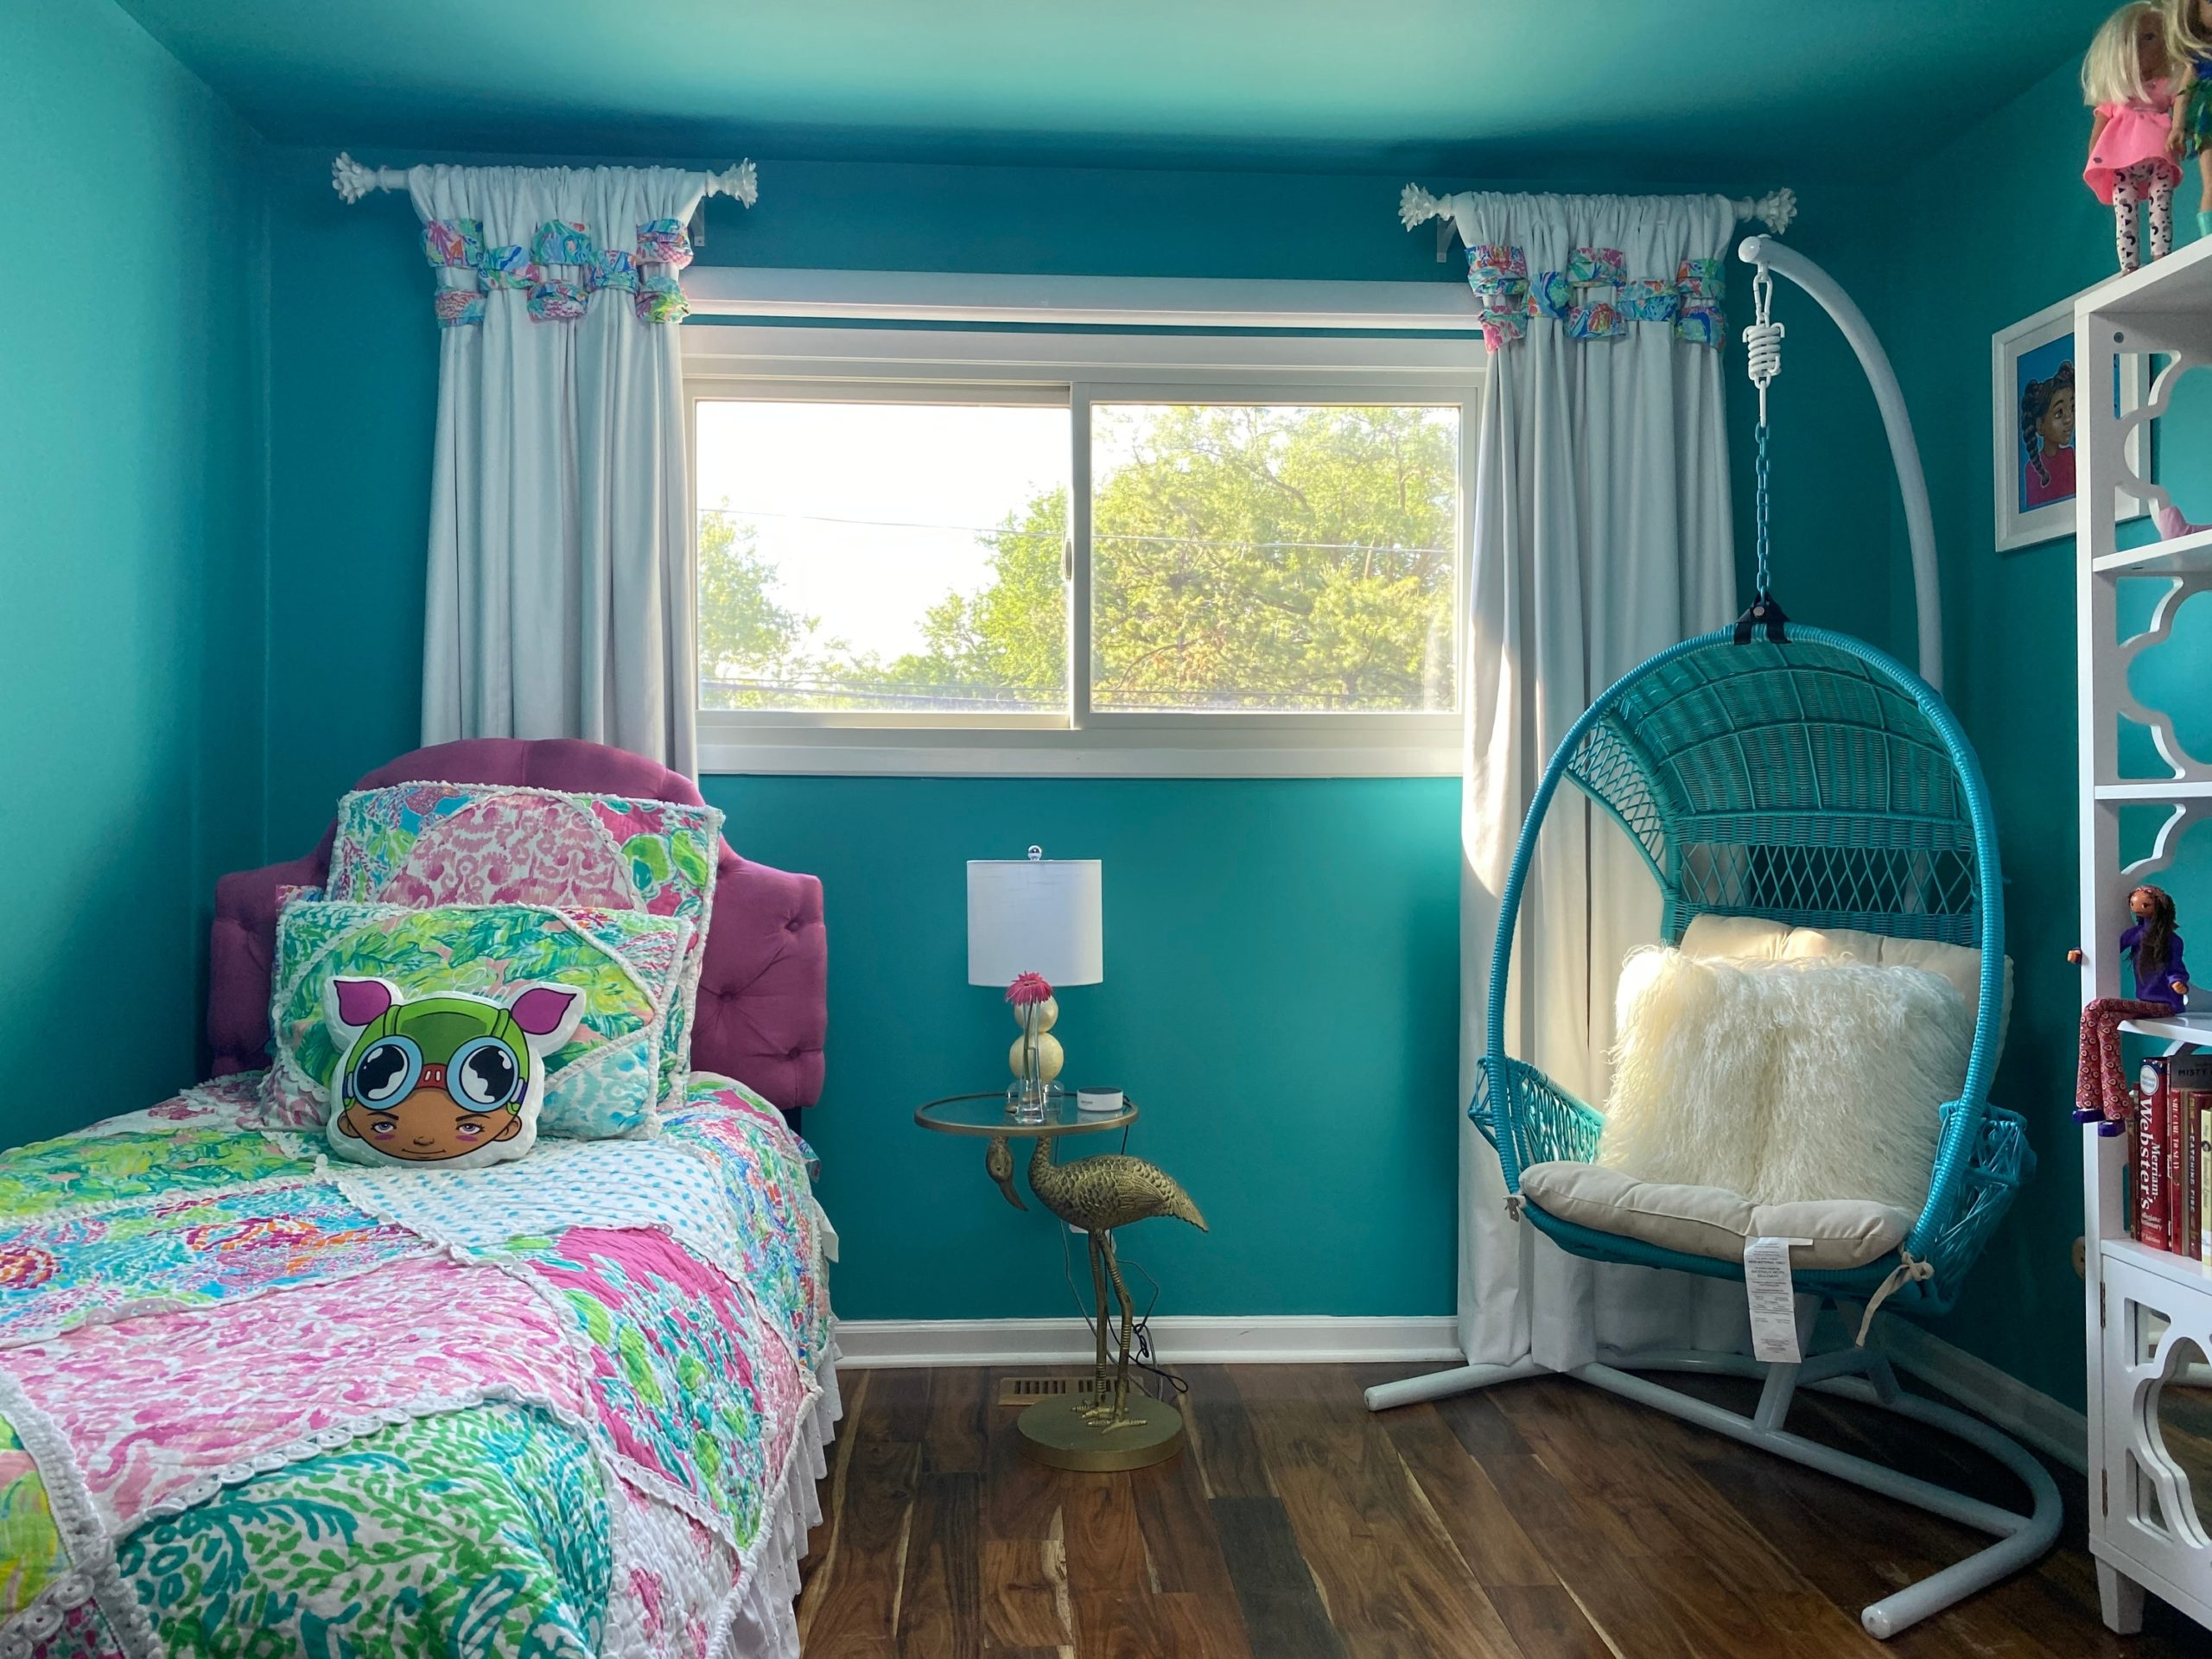 Designing a Kid's Room